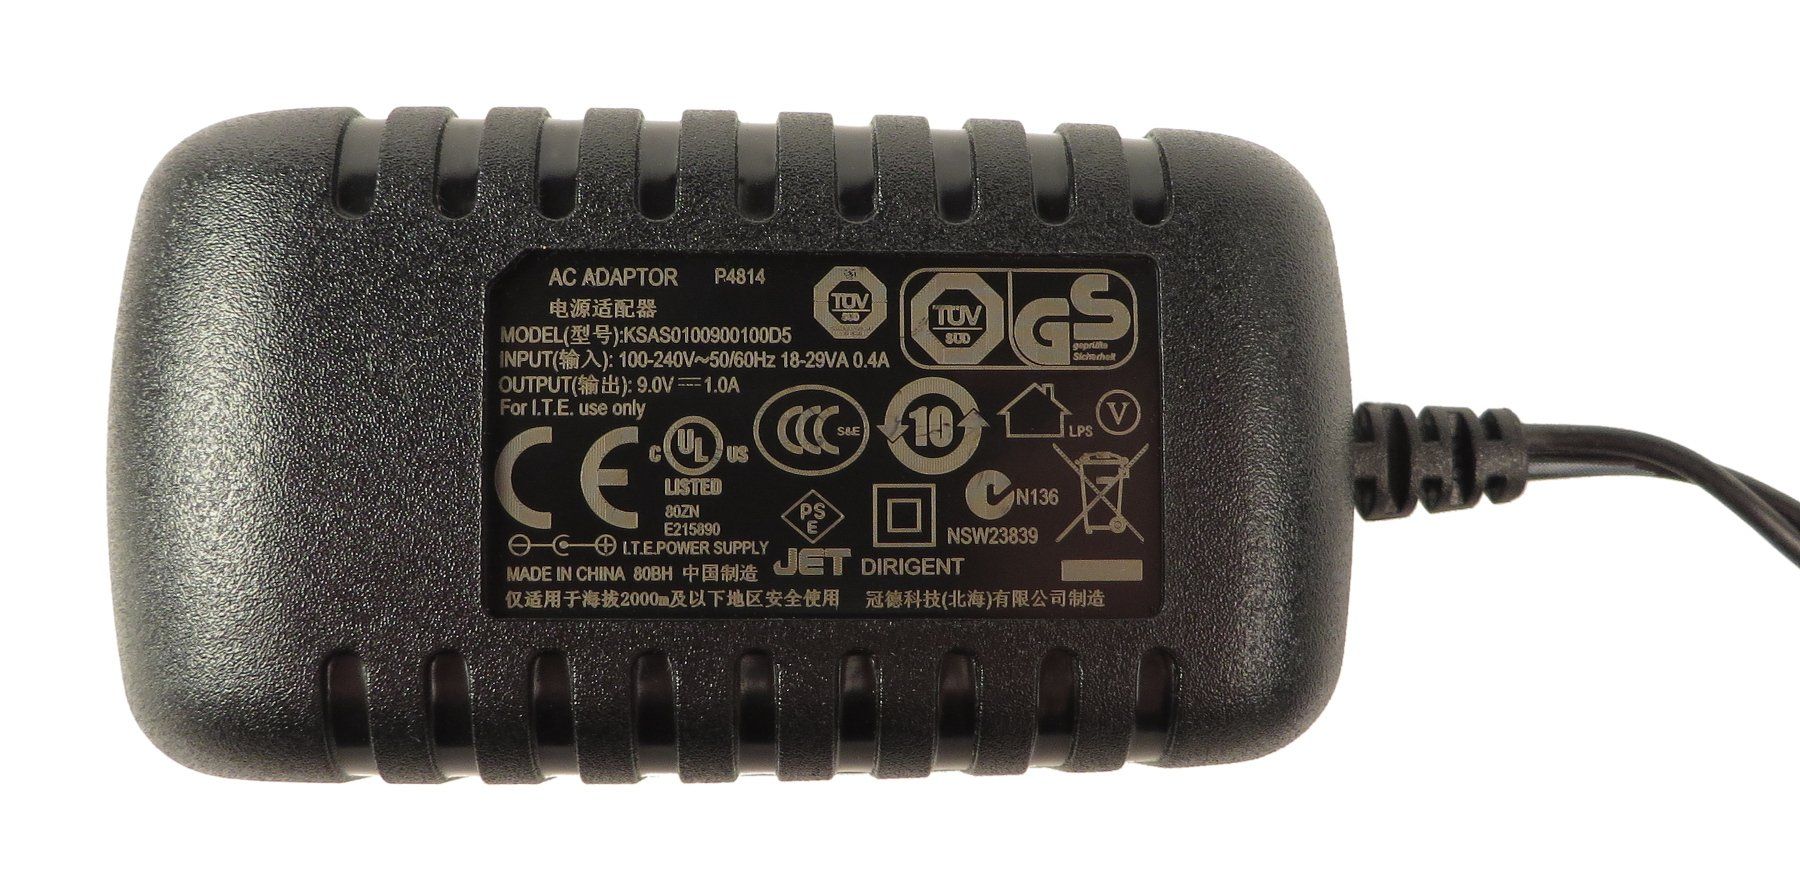 Studiologic 26021200 AC Adapter for VMK-161, VMK-176, VMK-188, and NumaCompact 26021200